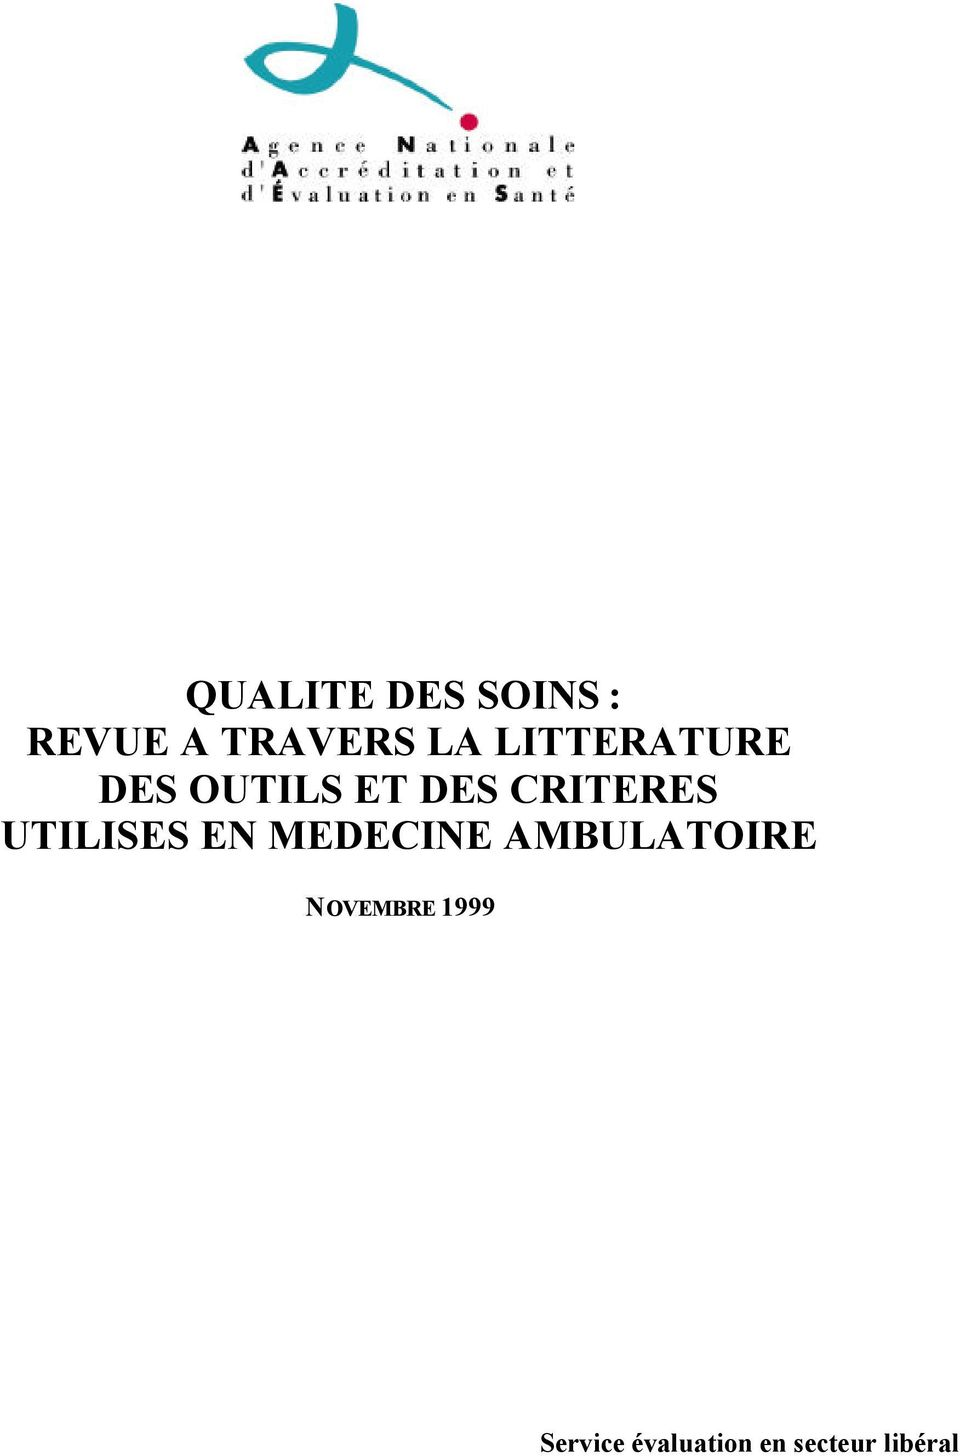 UTILISES EN MEDECINE AMBULATOIRE